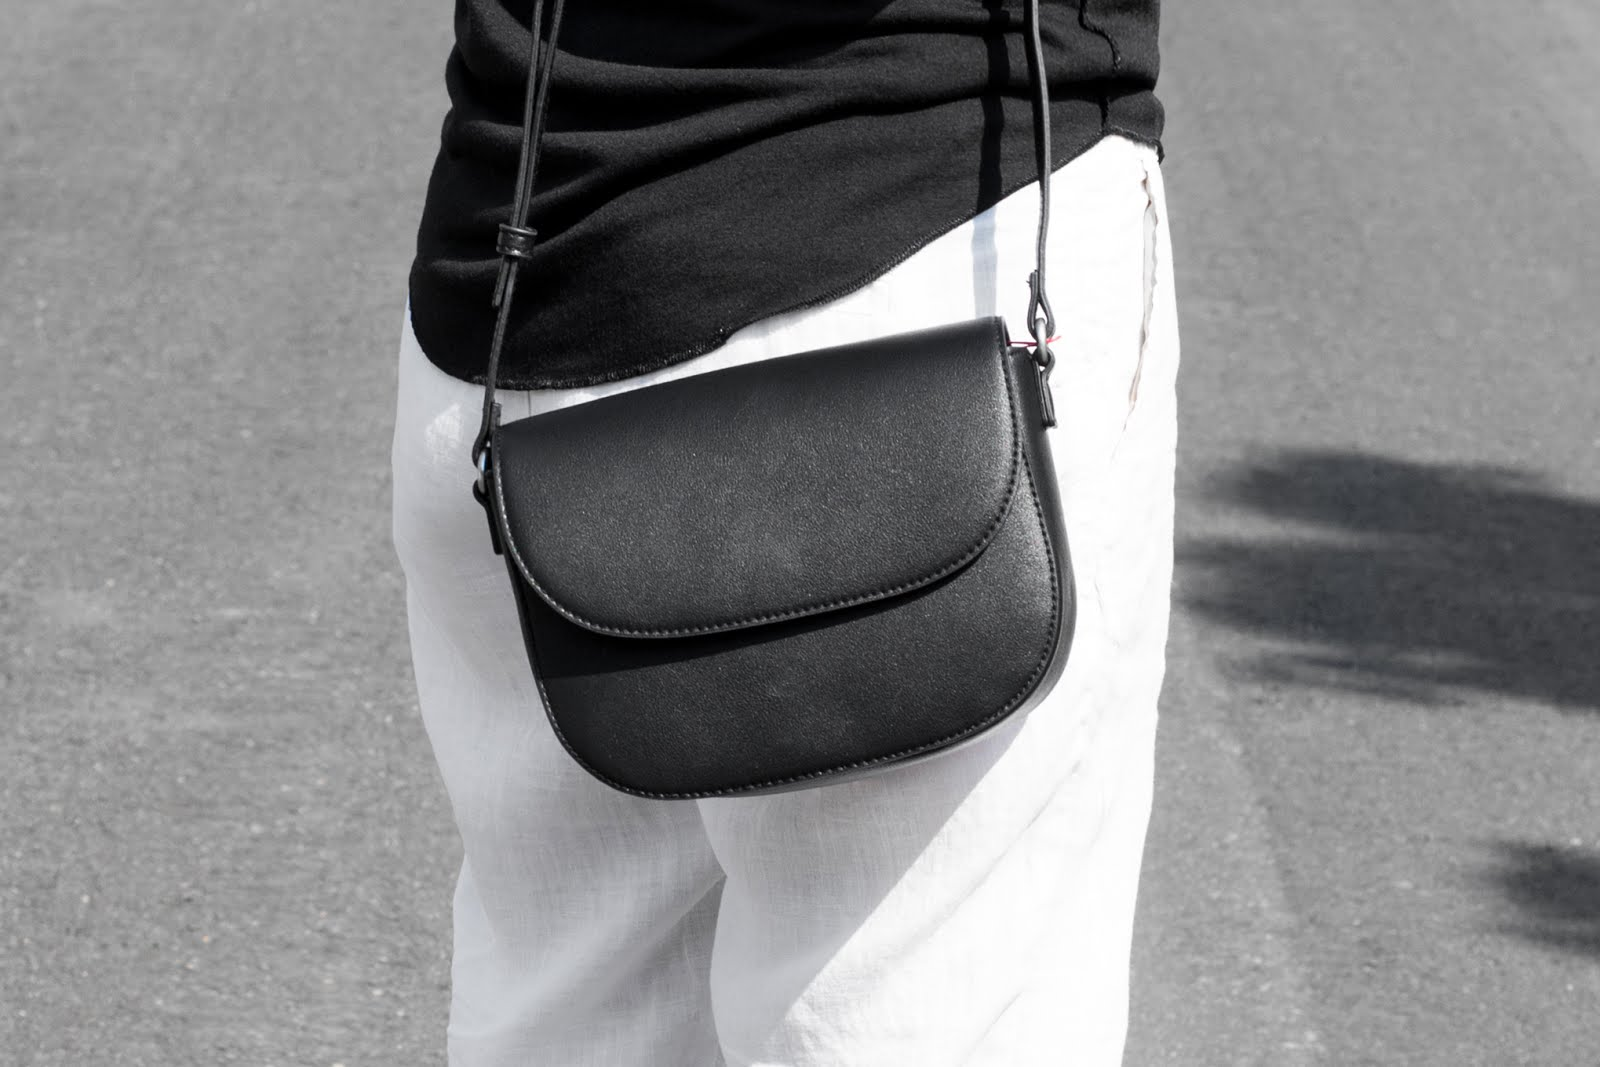 s.oliver, linen, black and white, outfit, sandals, plateau, minimalist, blogger, belium